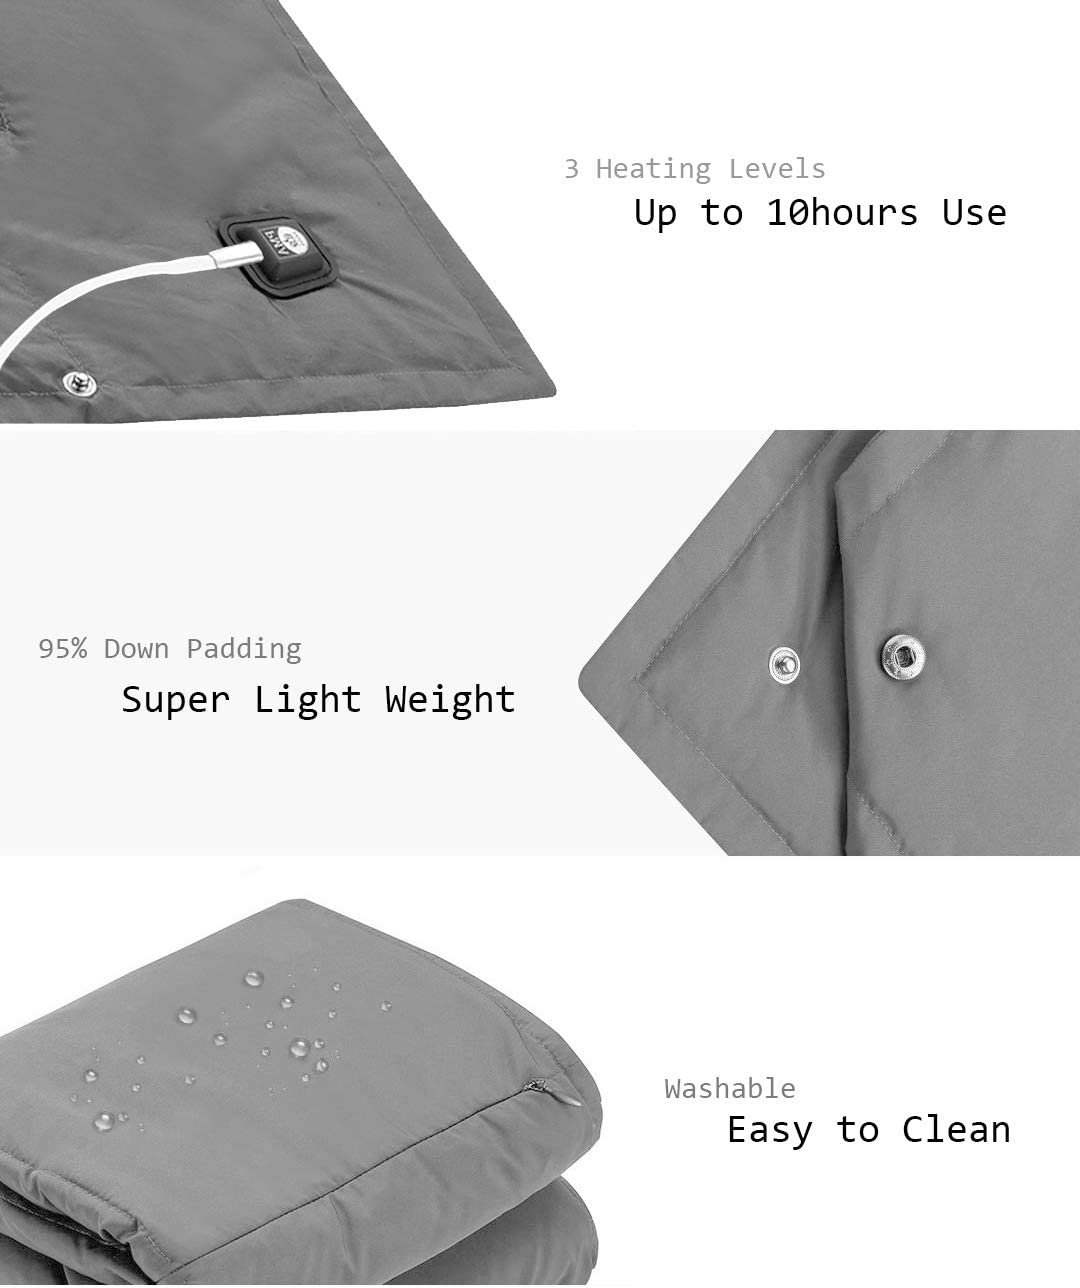 Battery Powered Heated Blanket Portable Super Fast Heating Electric Blanket For Outdoor Activity Body Warming Usb Heated Throw Blanket Travel Blanket Office Blanket Outdoor Blanket With Battery Bedding Blankets Throws